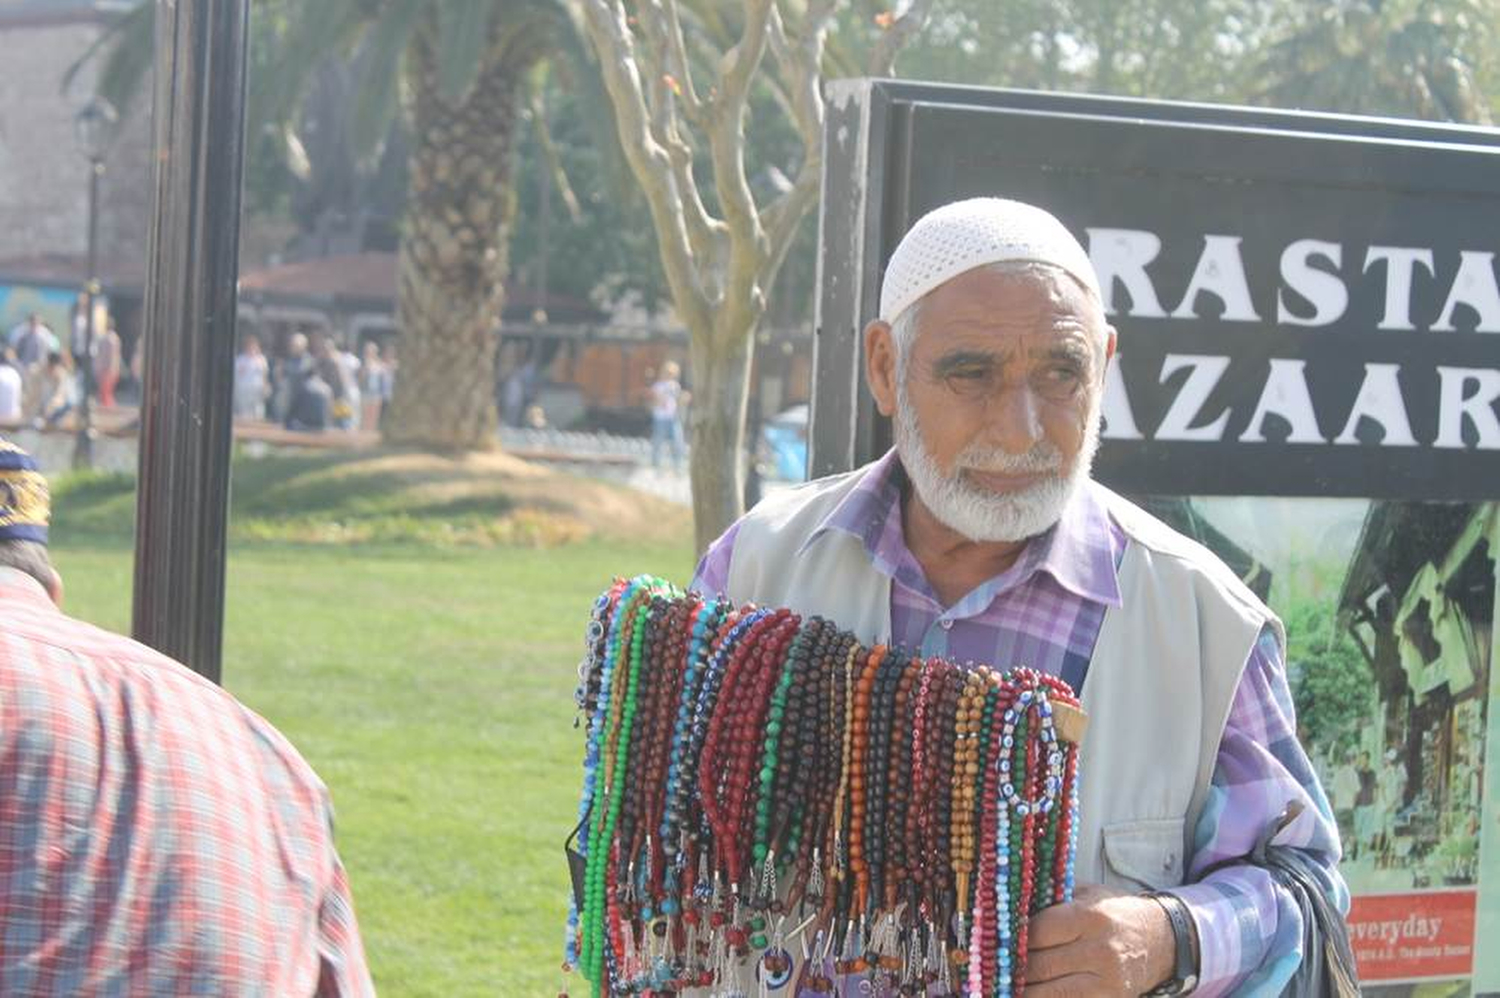 At first I thought this man was selling jewelry, only to be told that the beads are prayer tools.  The beads are similar to the Roman Catholic rosary . The colorful beads are used to count the repetitions of prayers or devotions. Muslims in Turkey are usually seen with them in public spaces. Phillip Dube '16/Bates College.